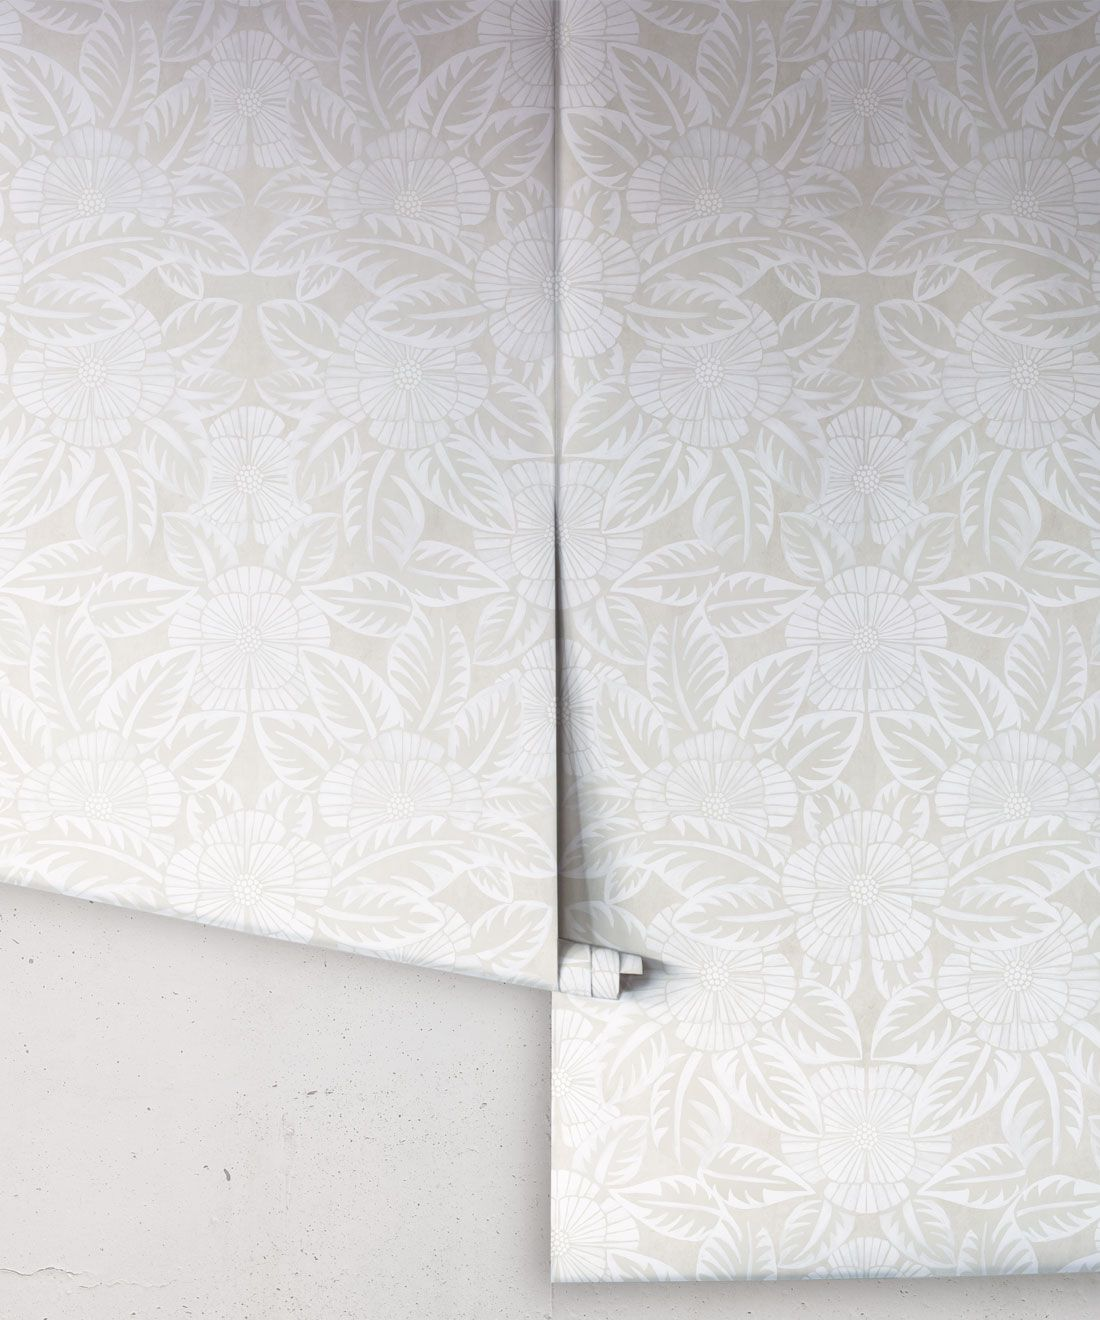 Calcutta Wallpaper • Flower and Leaf Motif Design • Ethnic Wallpaper • Beige Wallpaper • Rolls